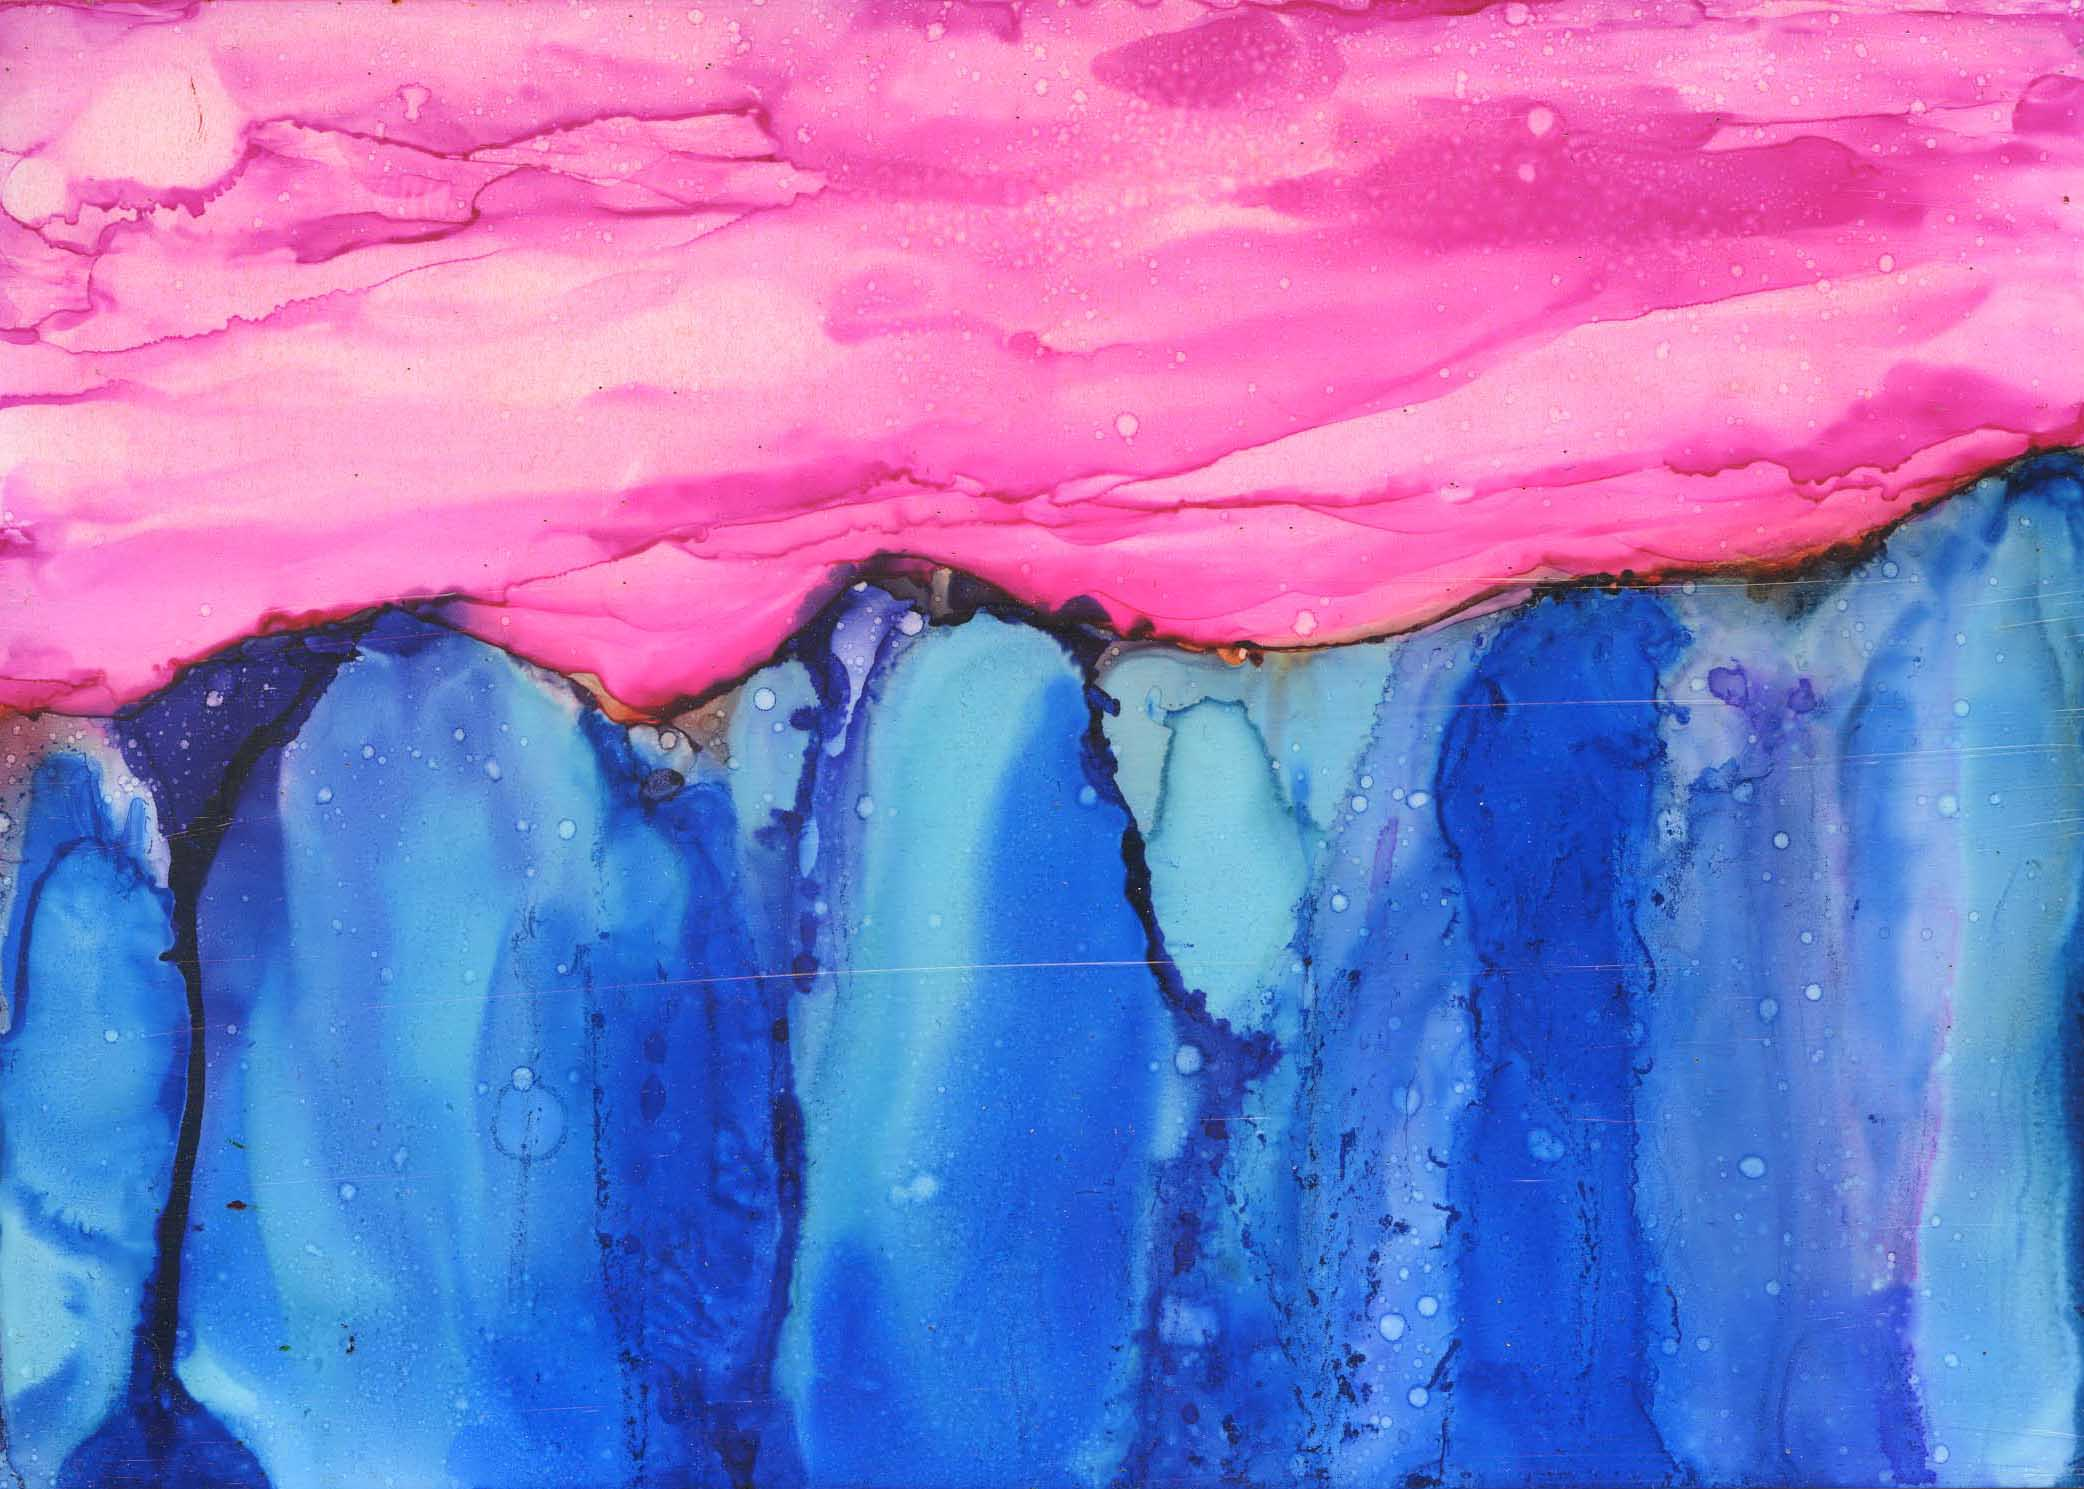 Pink Mountain Skies Alcohol Ink 5 X 7 Sold